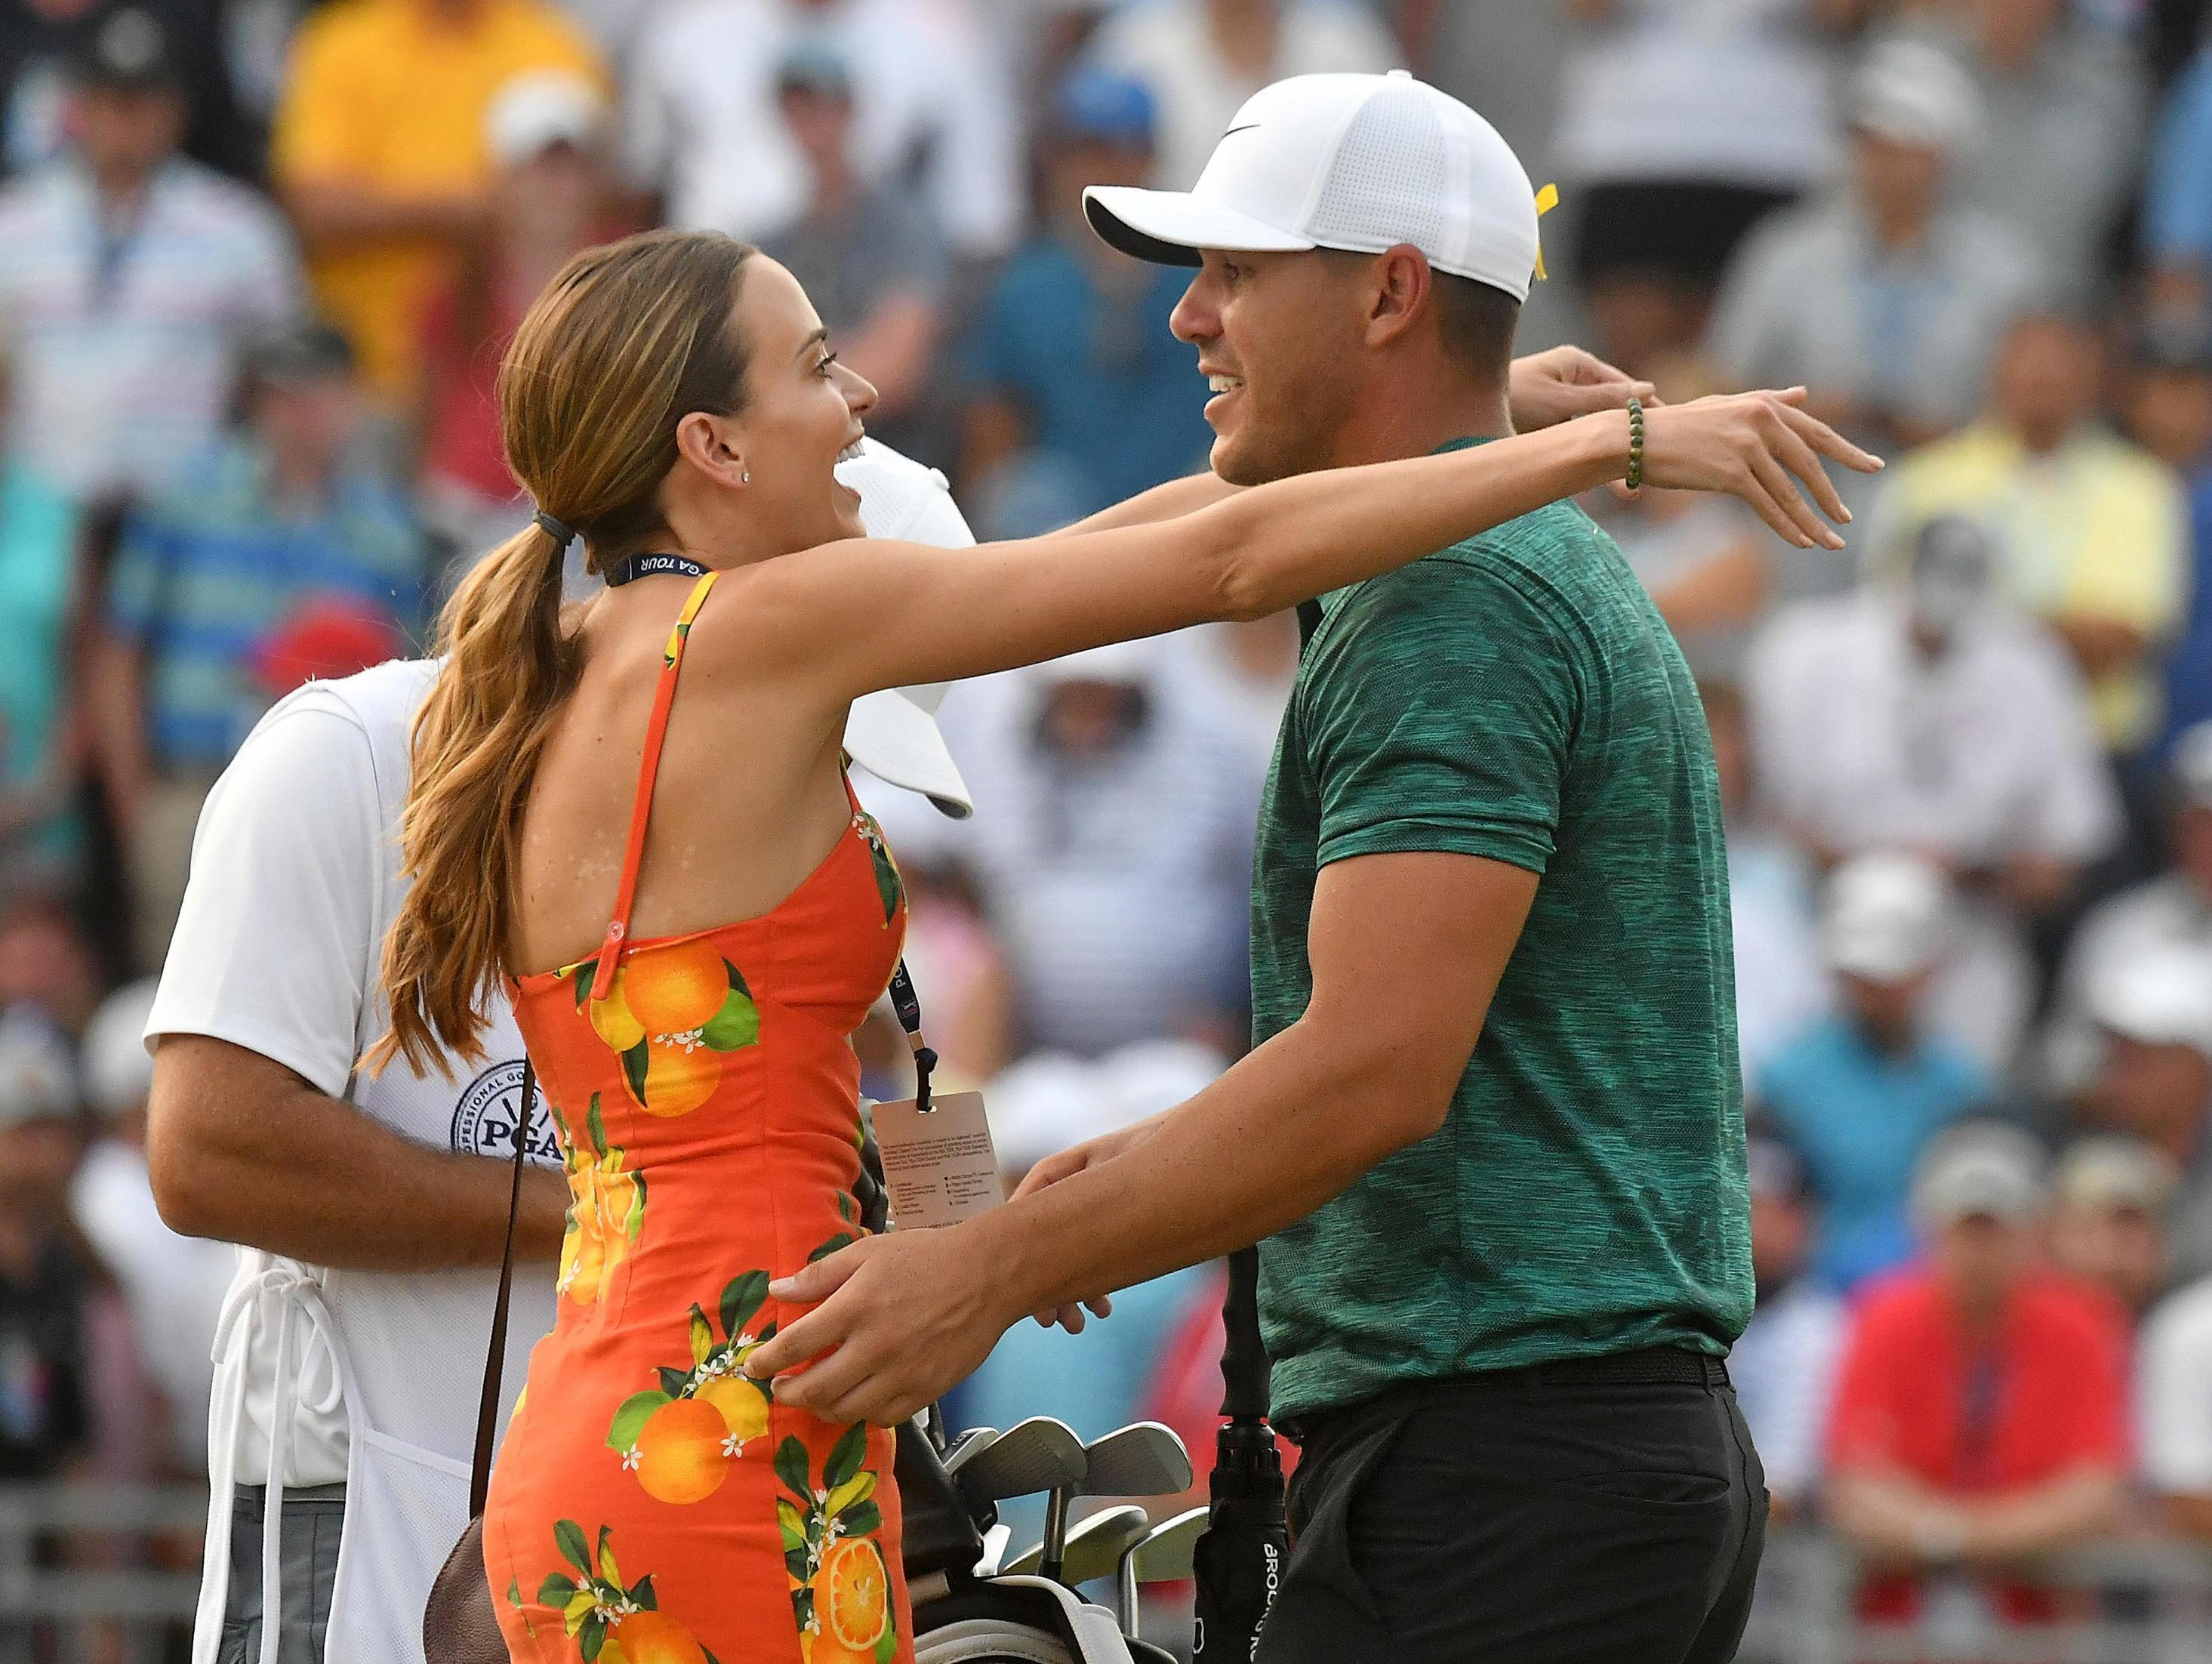 American star Brooks Koepka gets to celebrate his win with an embrace from actress and model girlfriend Jena Sims